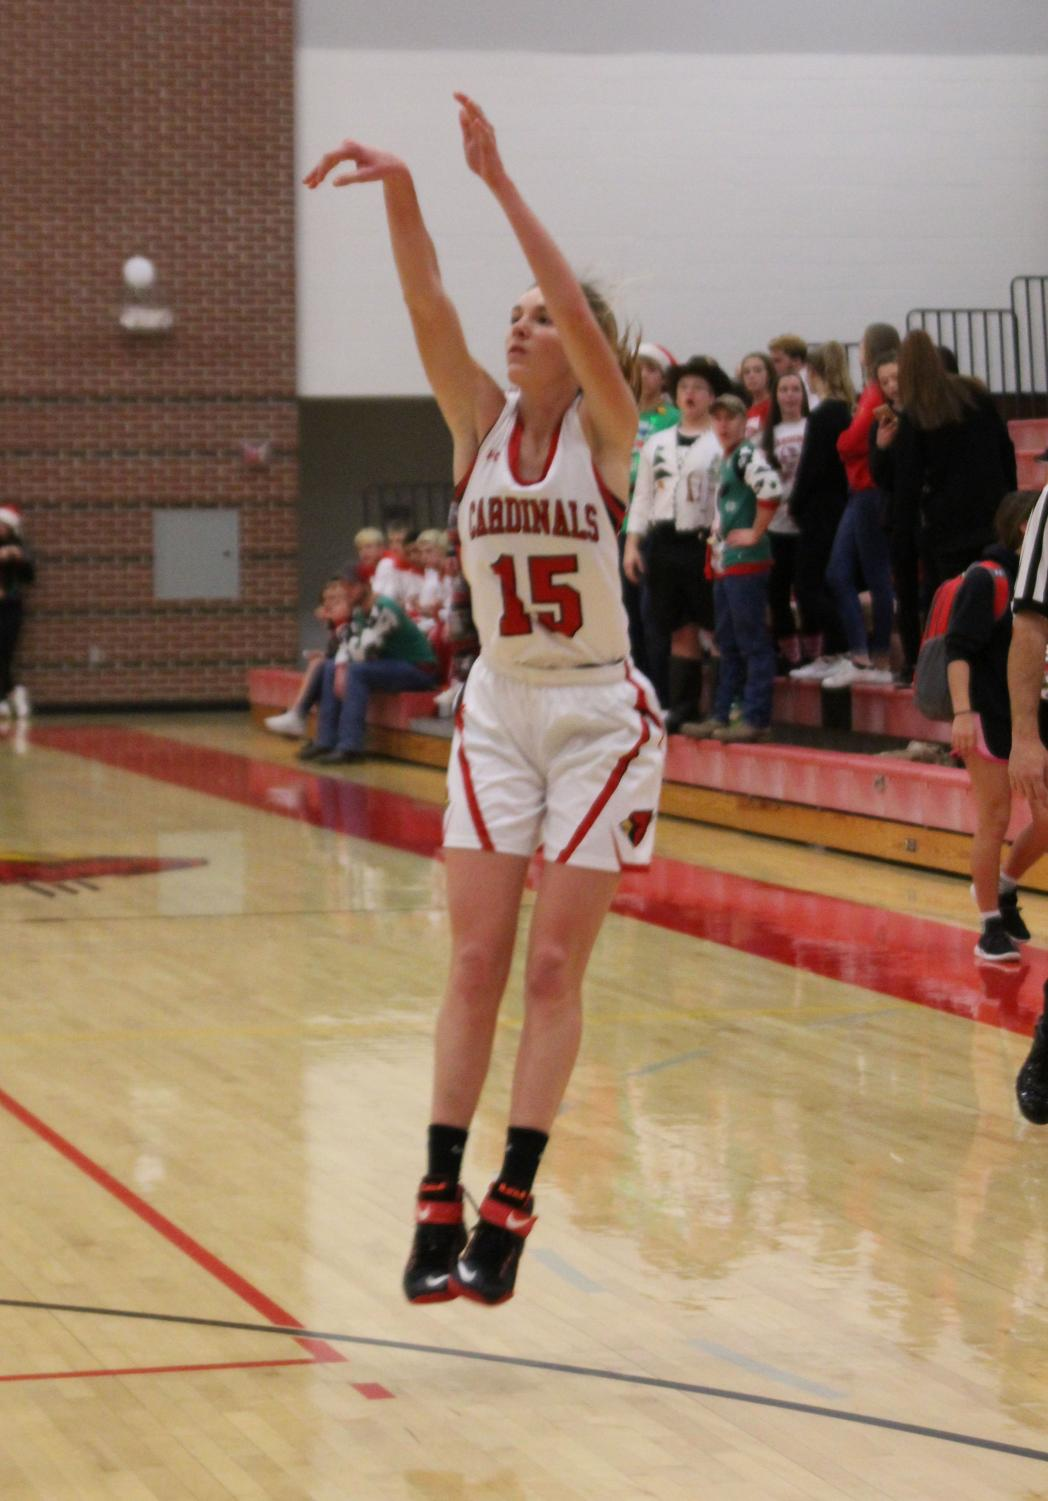 During the Chaparral basketball game Dec. 18, junior Kara Koester shoots a 3-pointer. The girls also had a high scoring game that game, which helped set Christmas break off with a positive start.